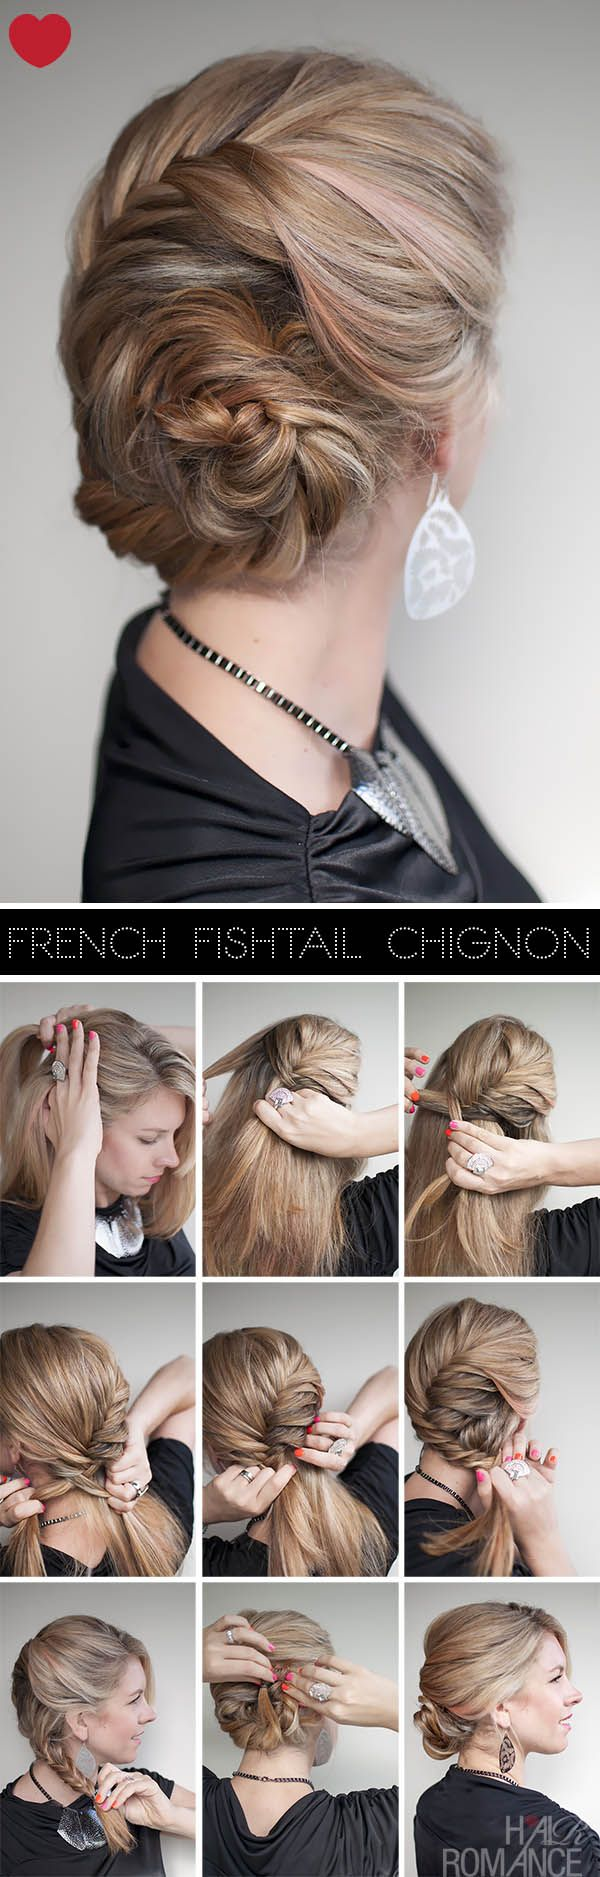 Diy french fishtail chignon pictures photos and images for